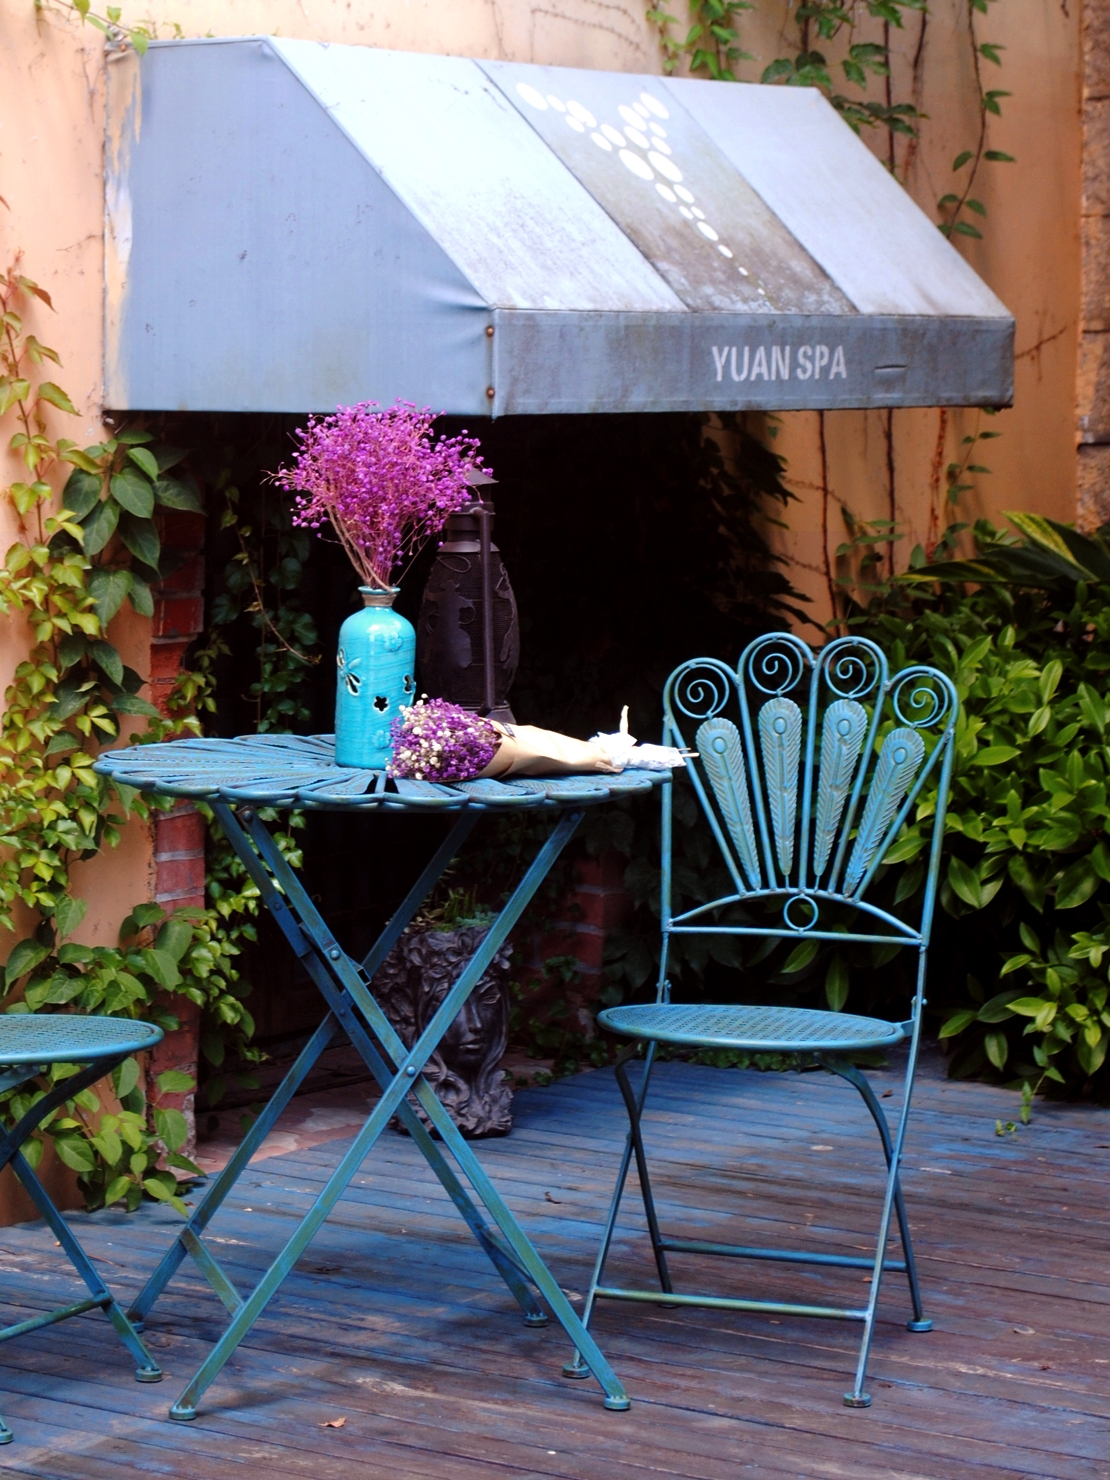 Outdoor Folding Table And Chair Suite Outdoor Patio Table And Chair Three-piece Garden Balcony Outdoor Furniture Metal